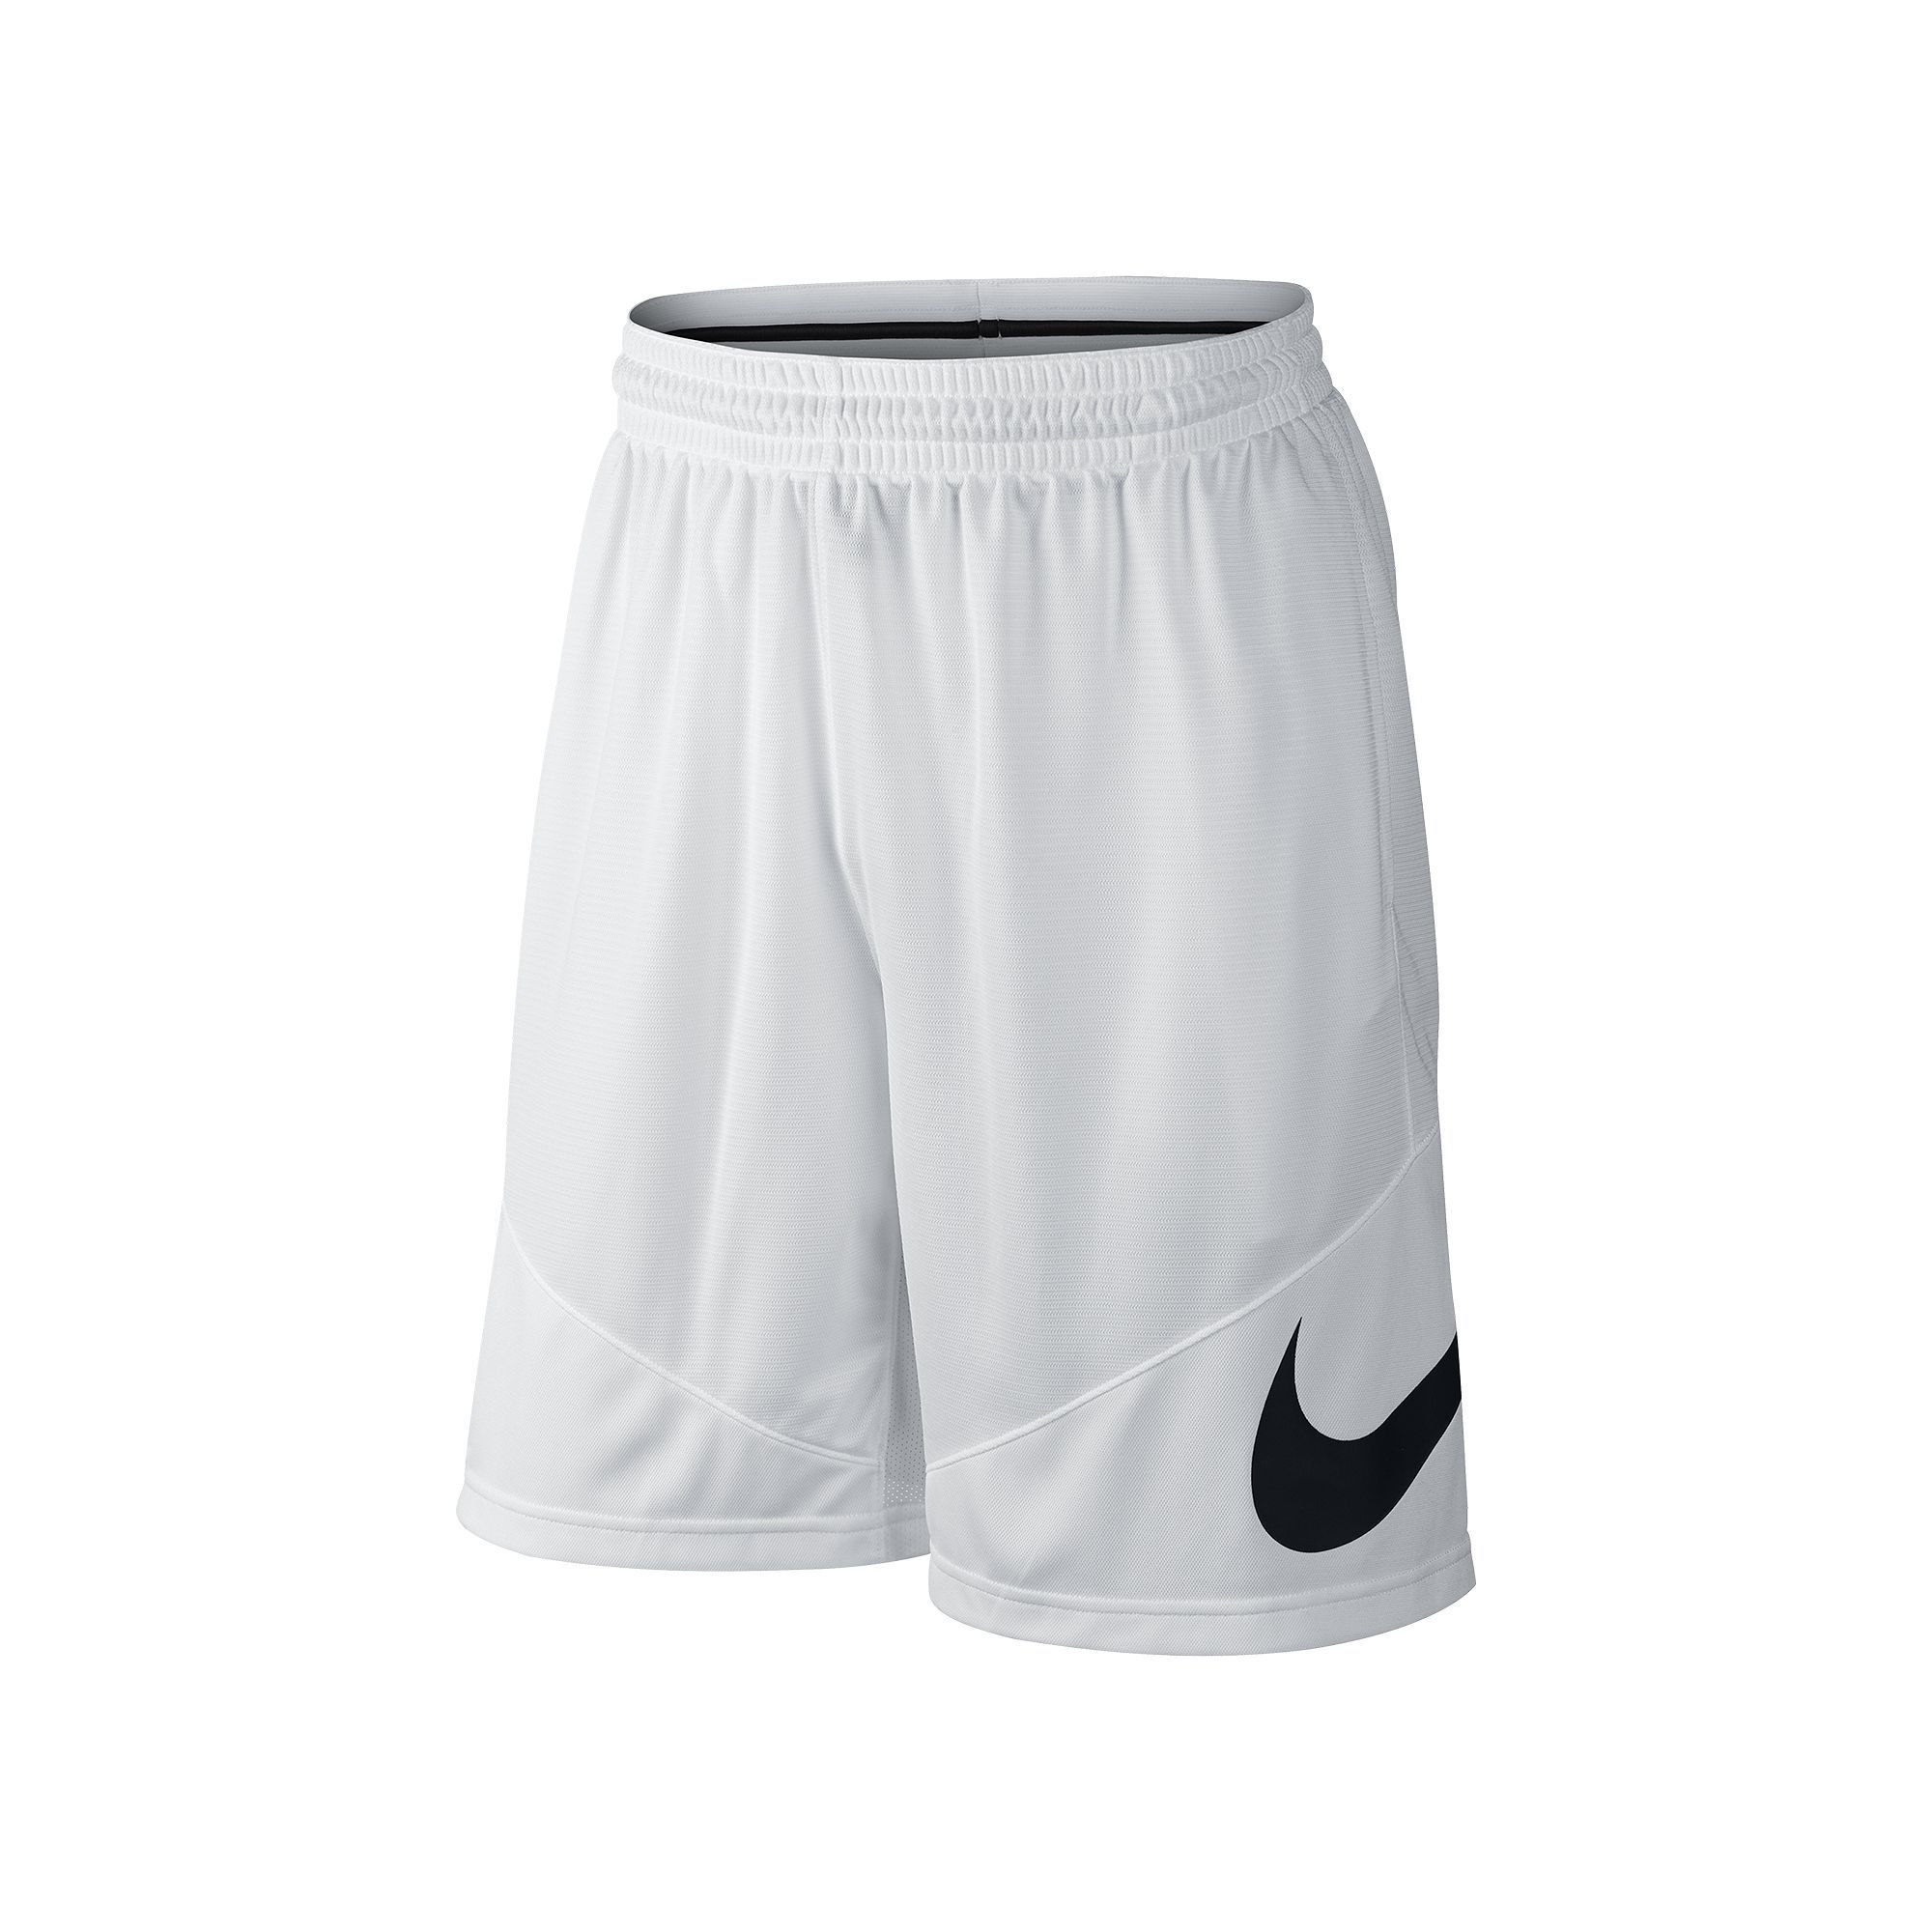 c5bea534ae54a3 Big   Tall Nike Dri-FIT Basketball Shorts in 2019